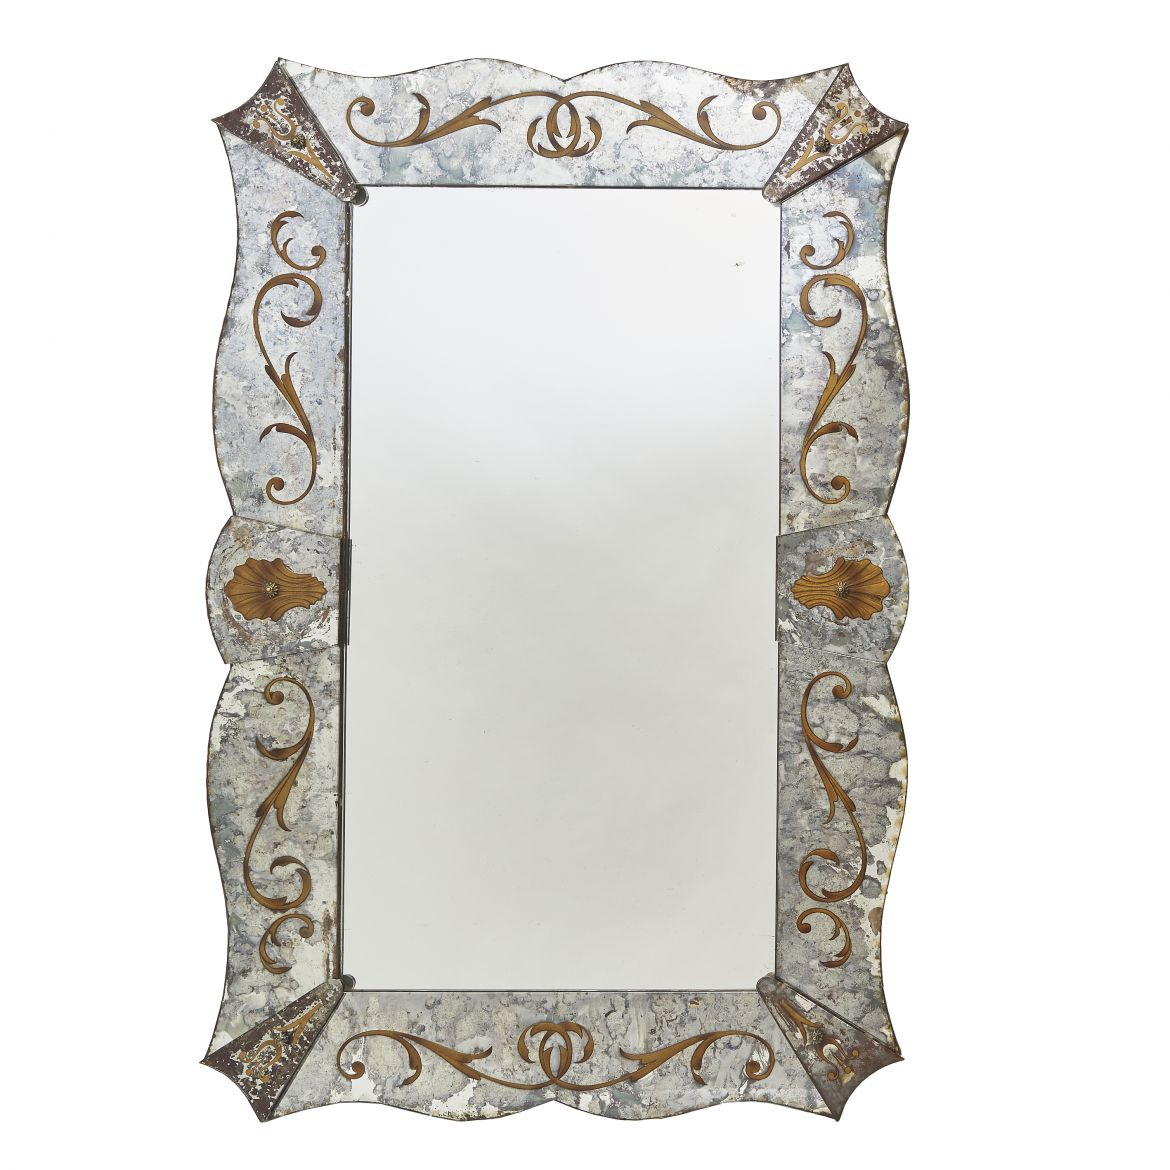 Venetian Style Mirror With Eglomisé Decoration